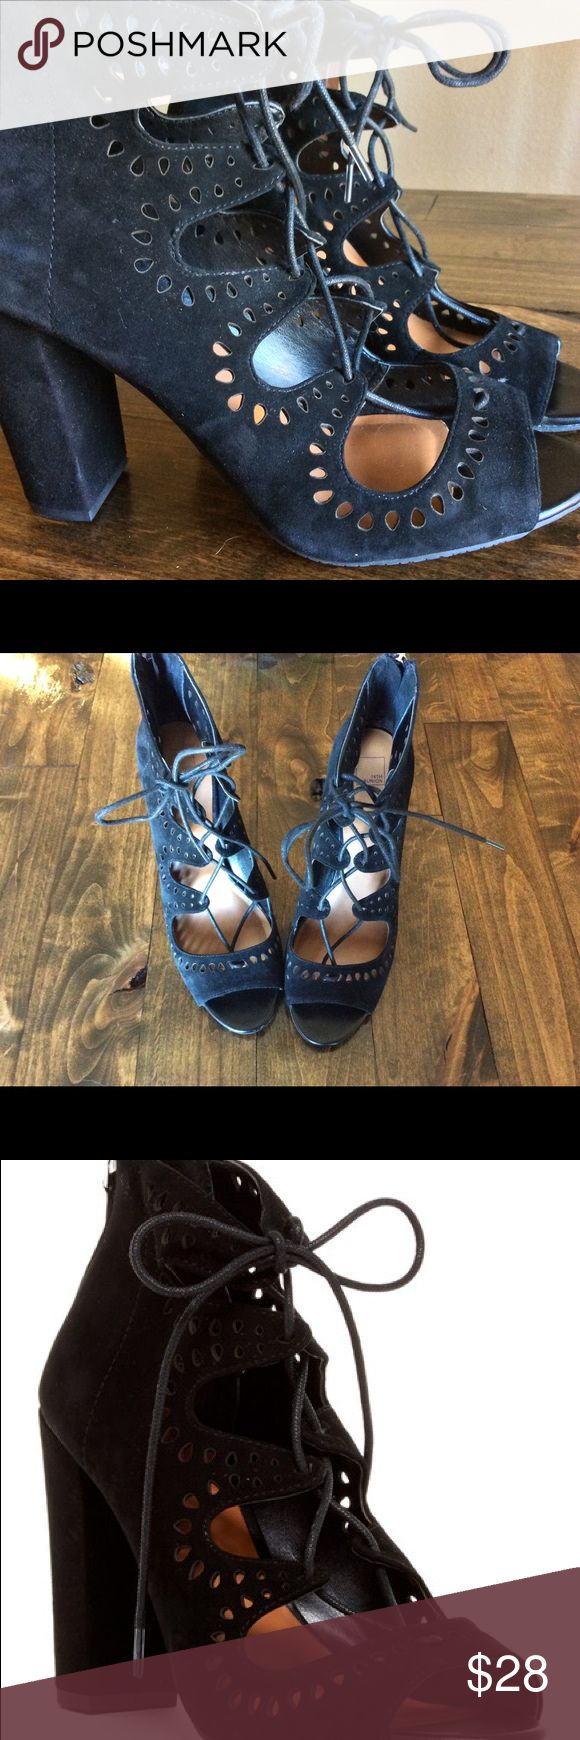 14th & Union Cecily Laser Cut Sandal - Size 9 This is a steal! Only worn twice and selling for less than half price. Sold out at Nordstrom, get yours here - like new! 14th & Union Shoes Heels